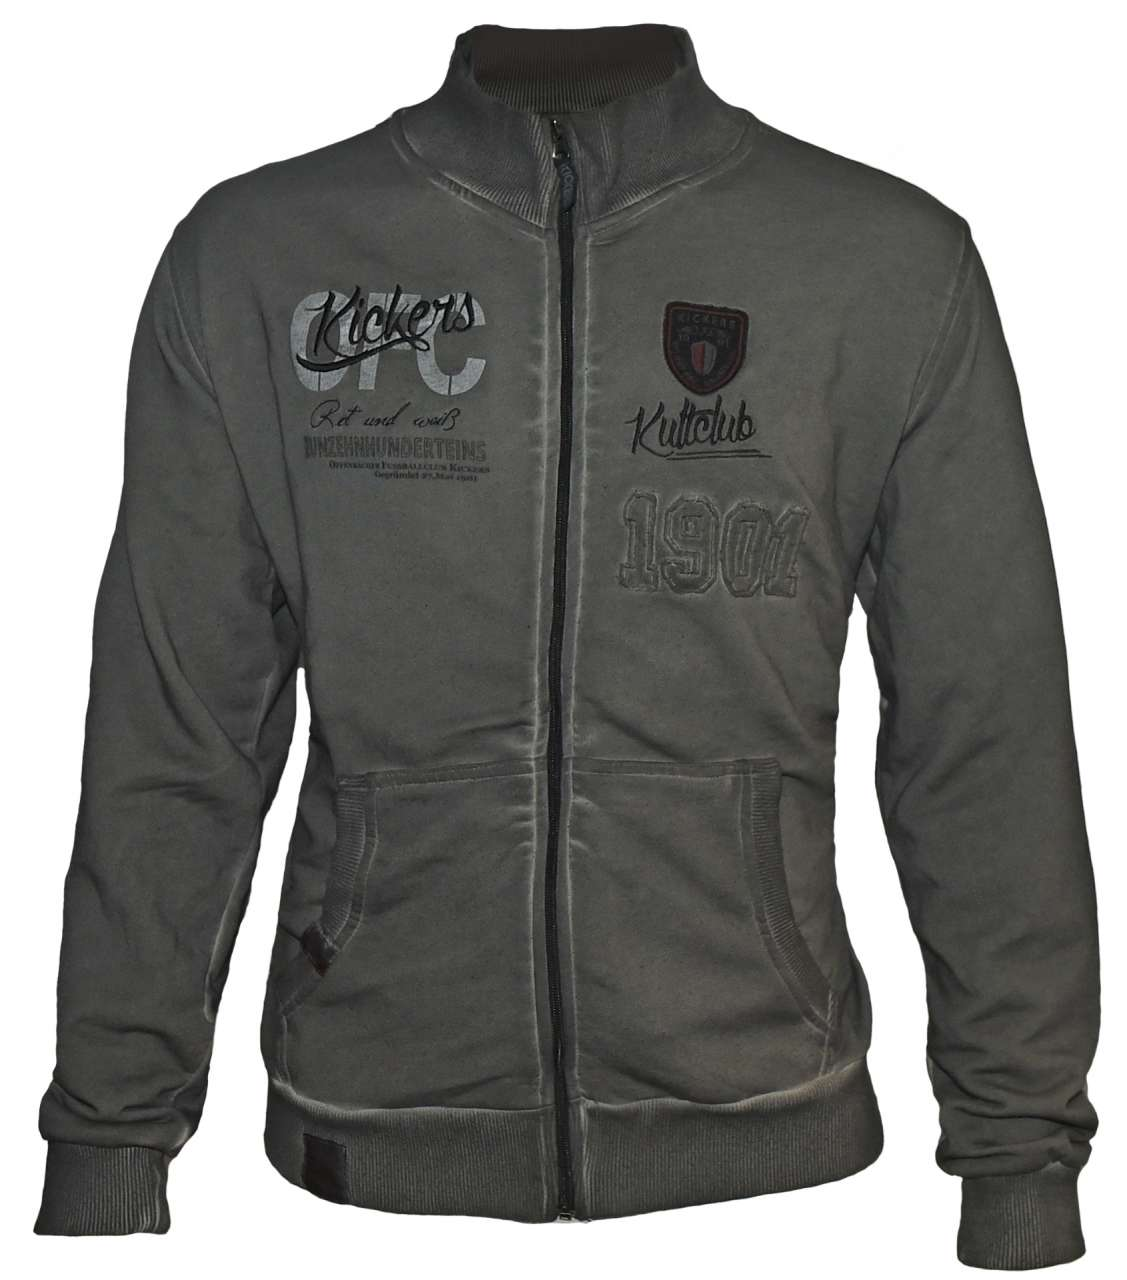 zip jacke kultclub zip hoodies jacken kickers. Black Bedroom Furniture Sets. Home Design Ideas